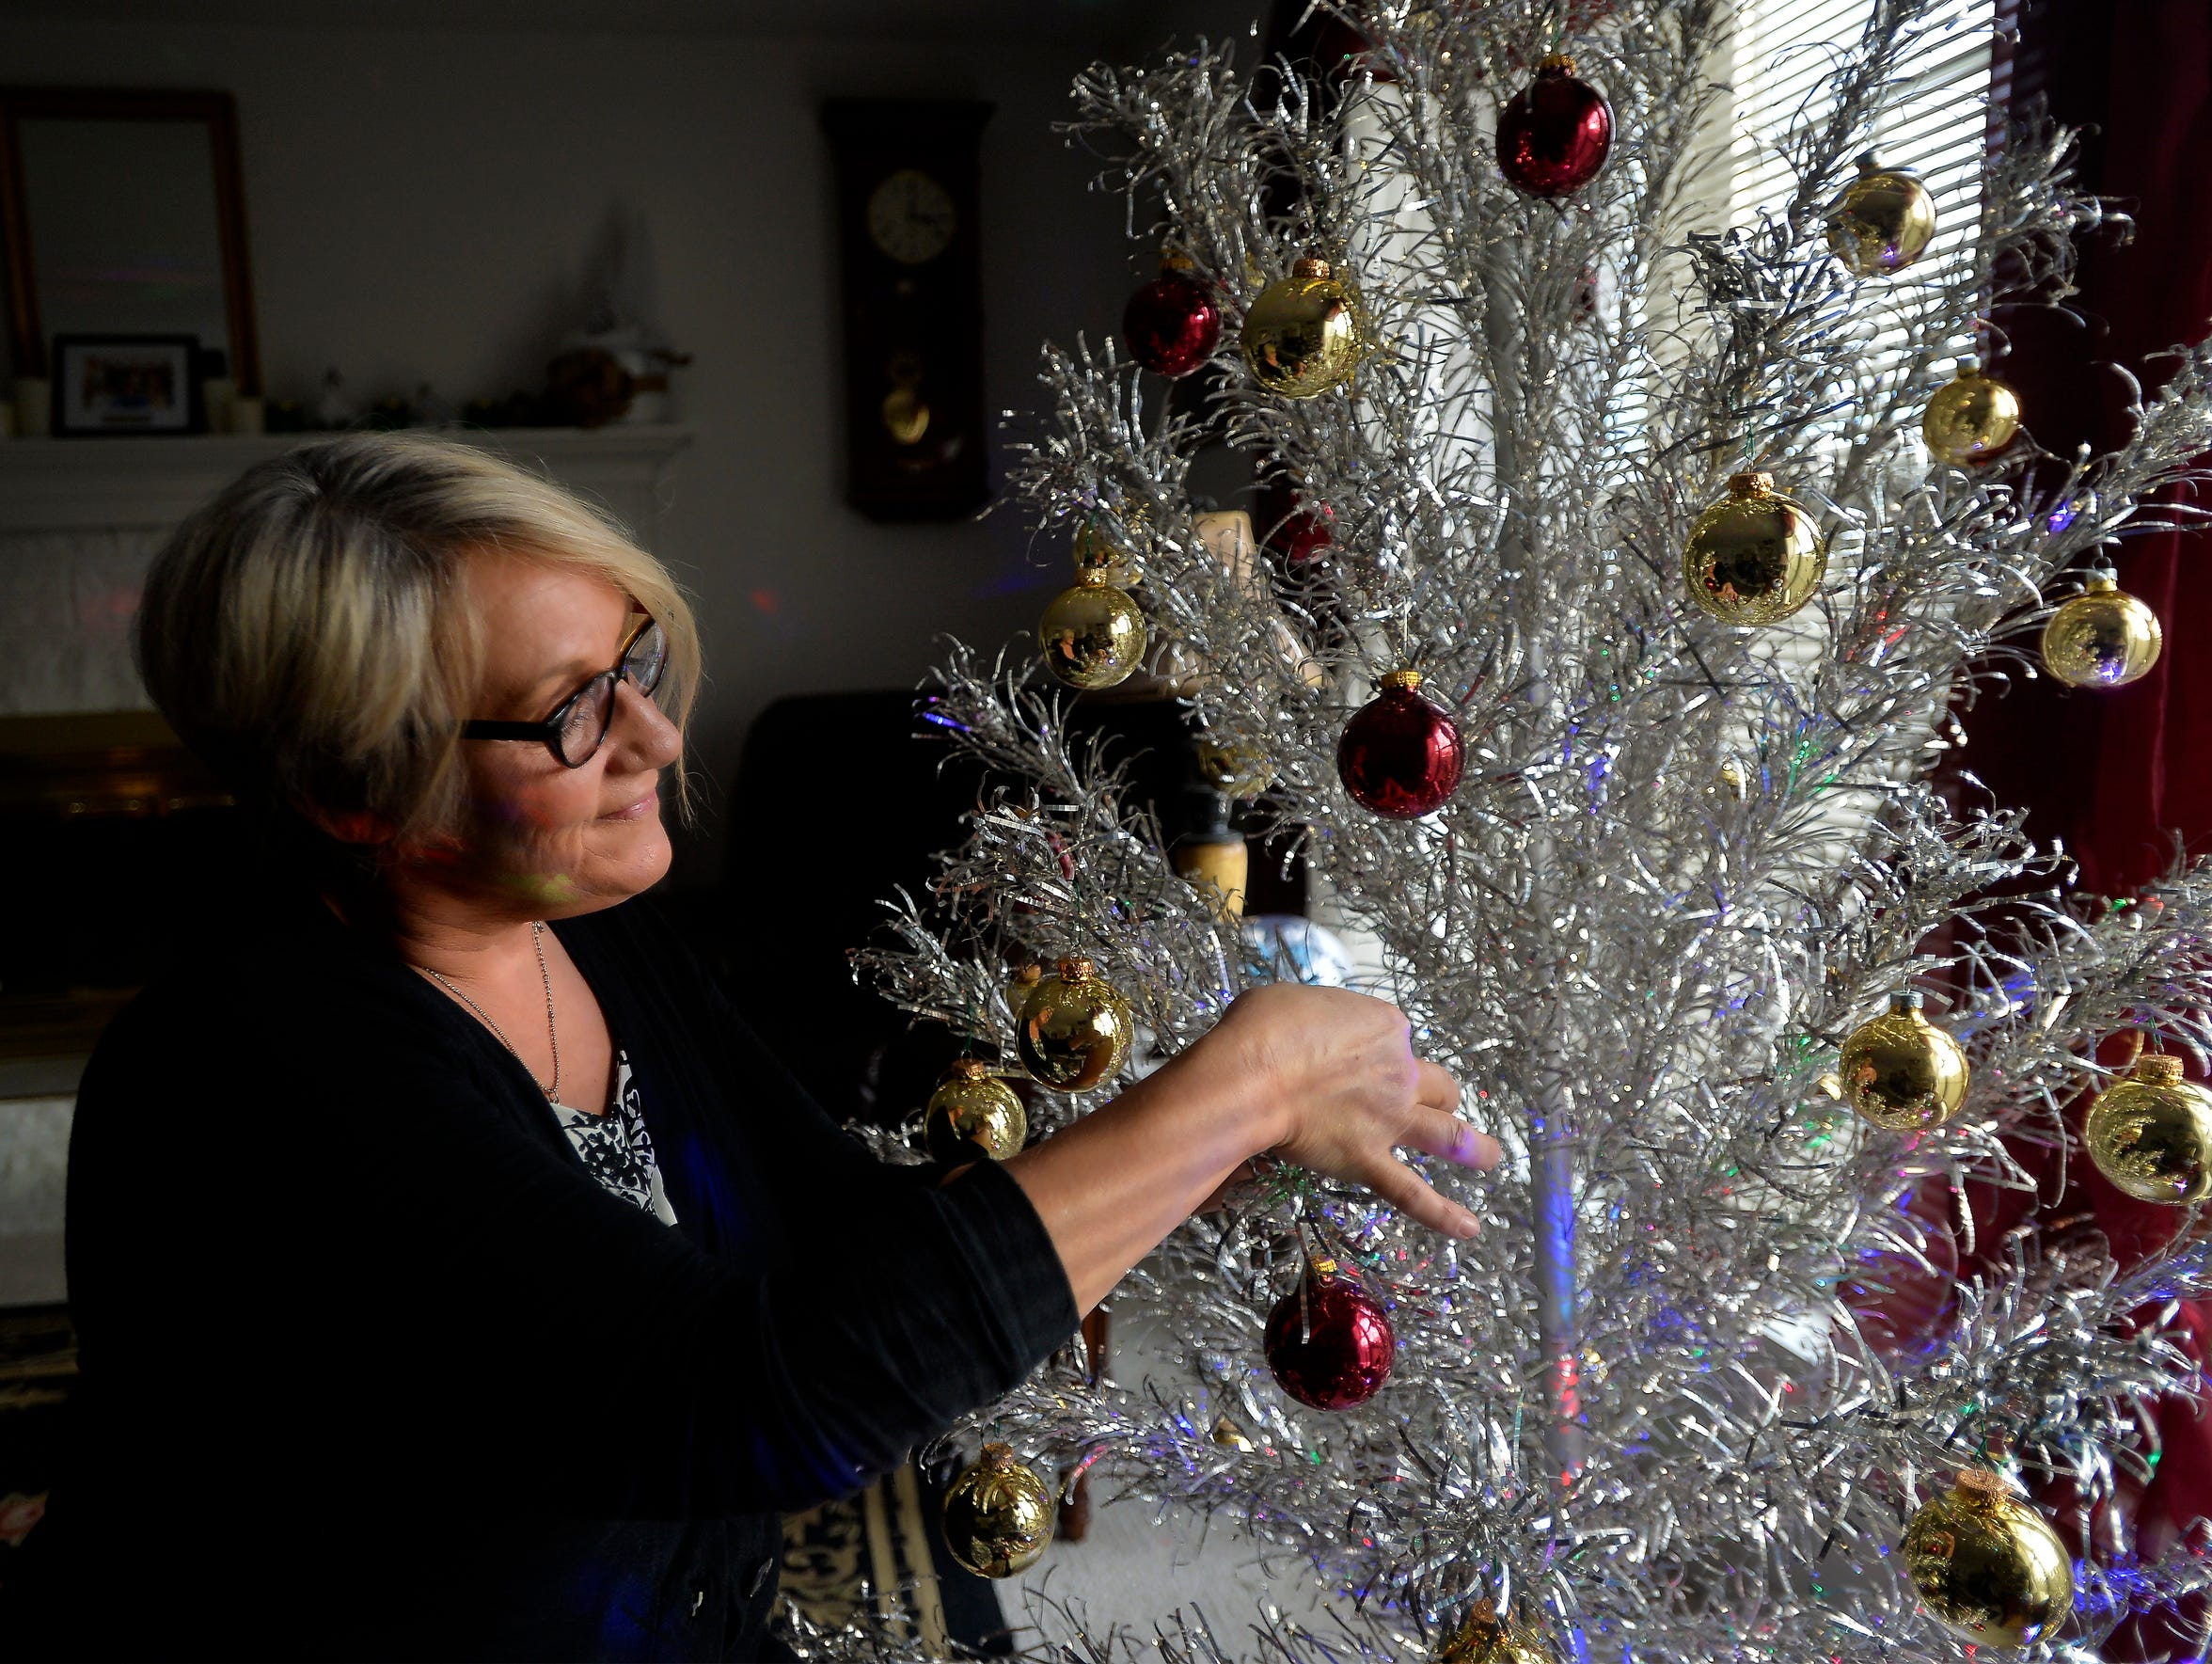 Rene Murray with her new vintage aluminum Christmas tree, which was an early Christmas gift from her daughter. It's been Rene's Christmas dream to have an aluminum tree since she first saw one at age 10.